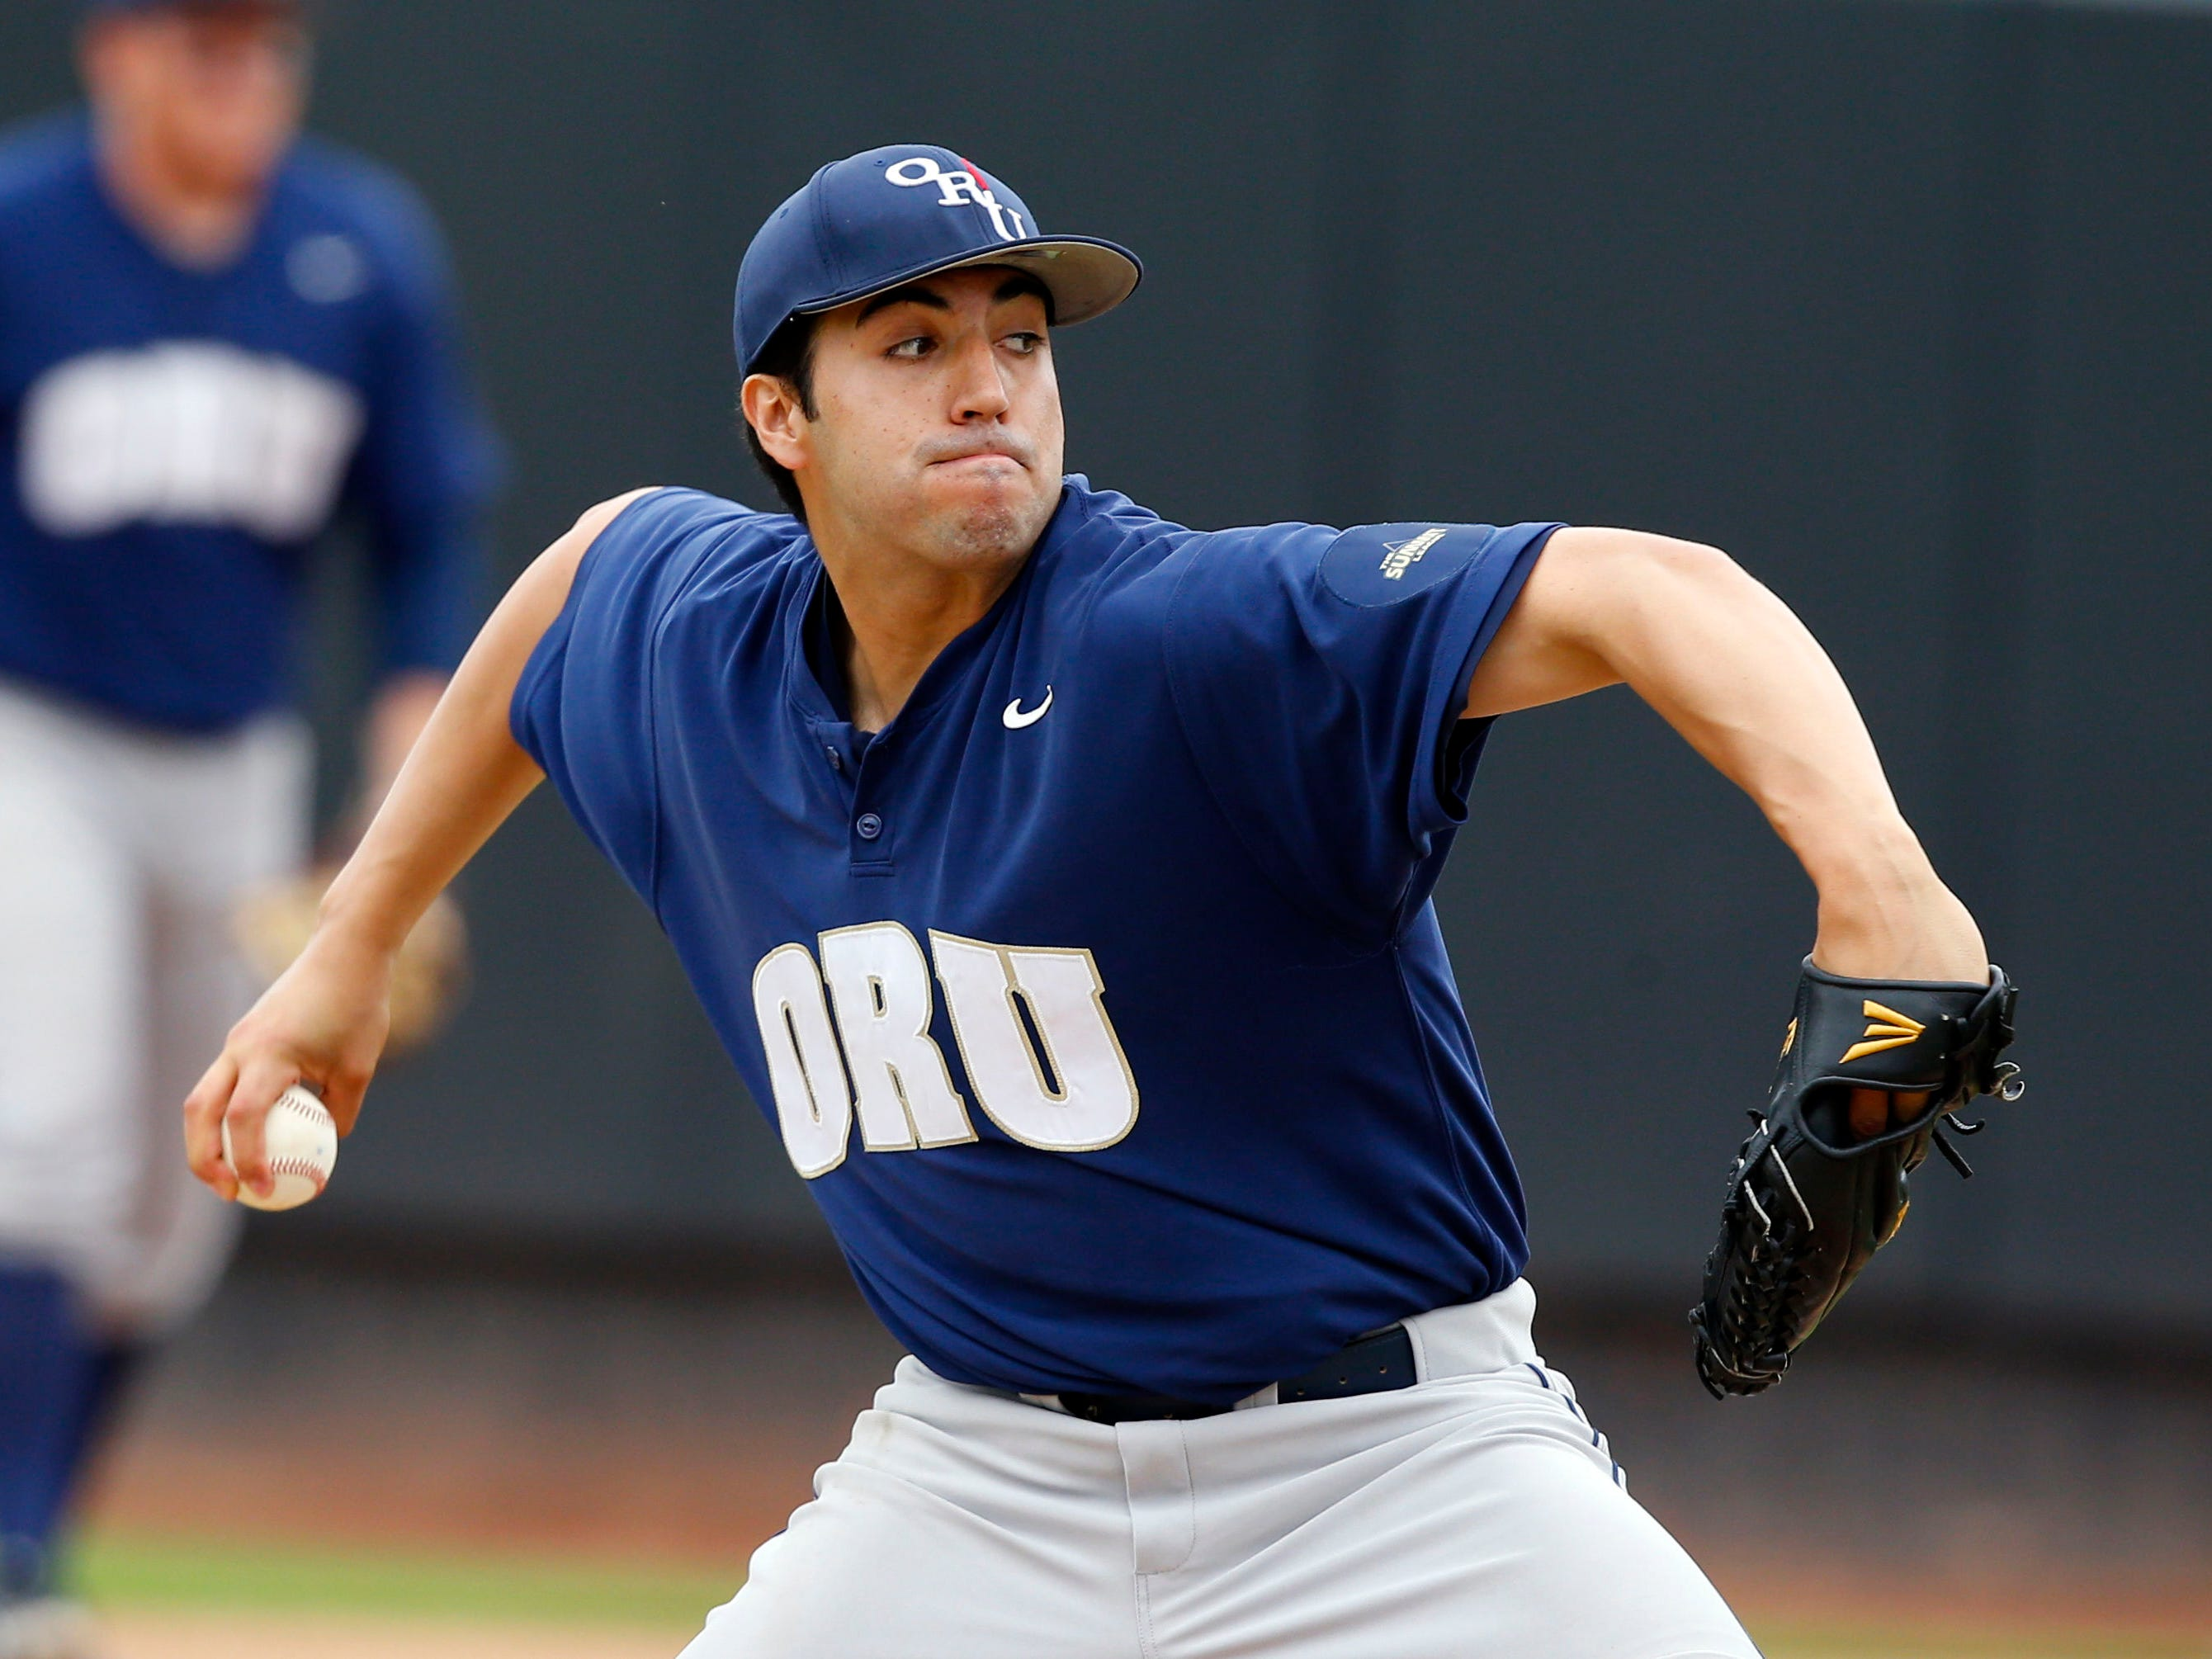 ORU ace Guillermo Trujillo (10-4) took the loss, giving up six hits and four runs (all earned) in five innings.